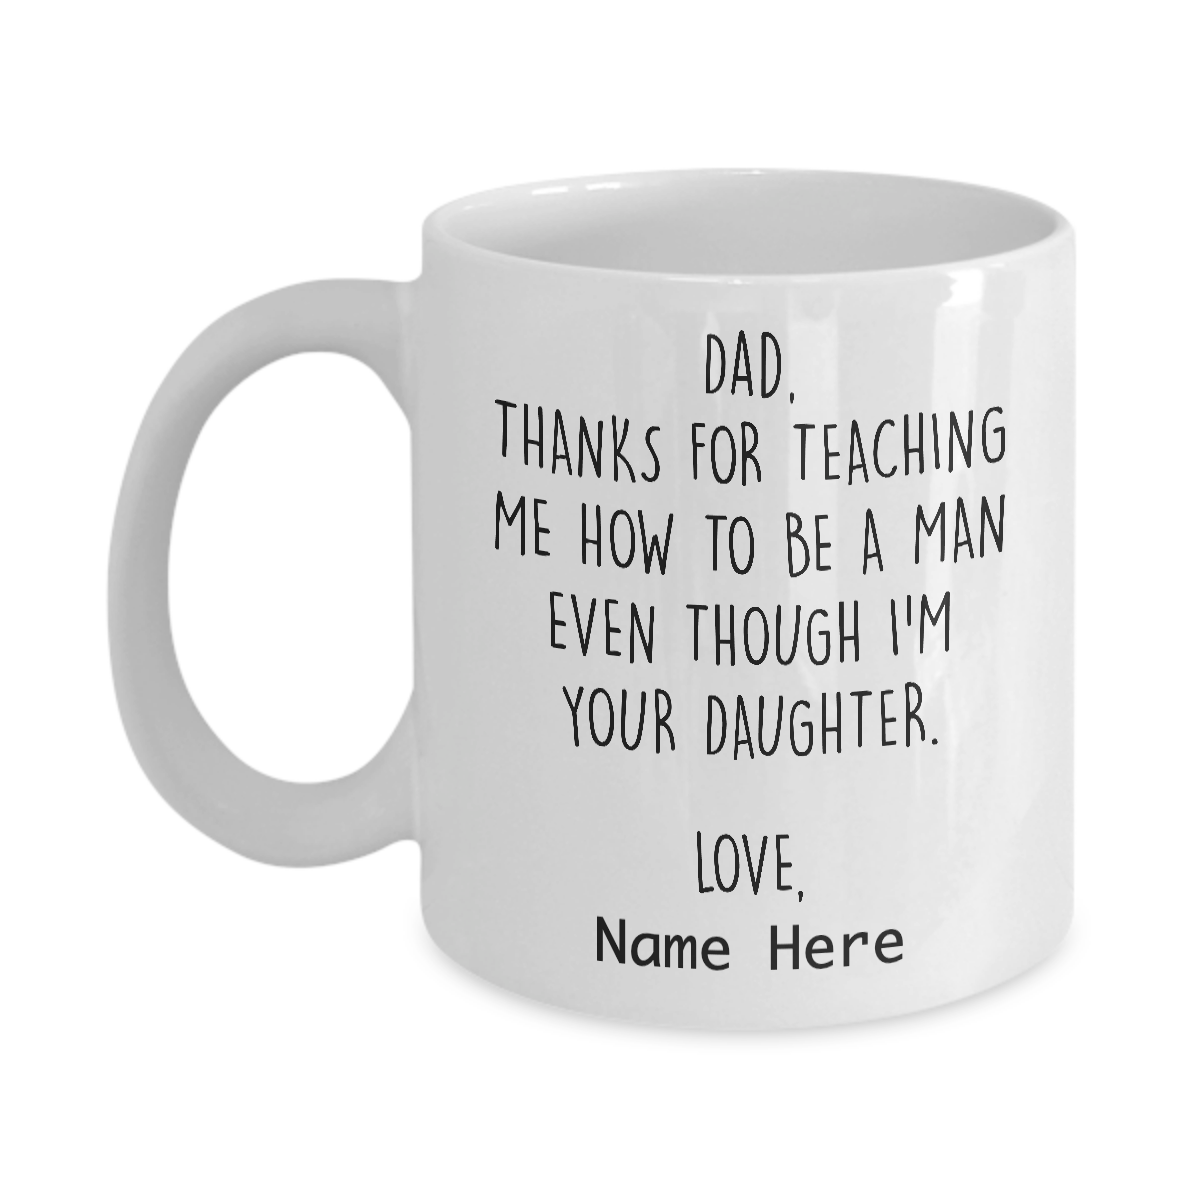 Personalized Mug Dad Thanks For Teaching Me To Be A Man Even Though I Miadove